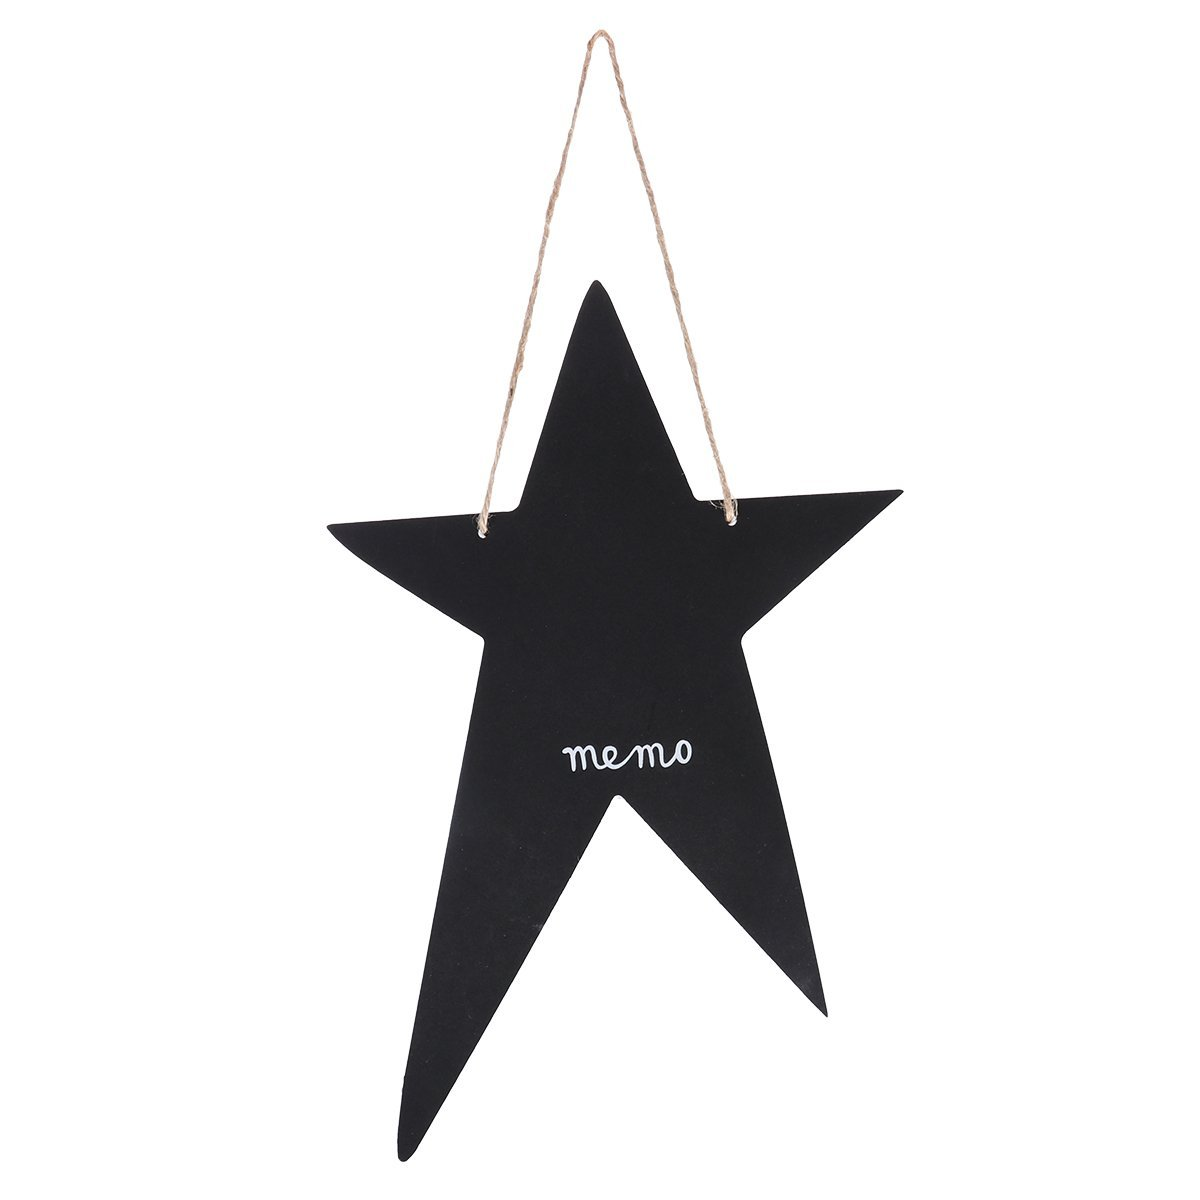 Tinksky Mini Chalkboards Five-pointed Star Shaped Blackboard Message Board Signs Hanging Memo Board Guest Book for Wedding